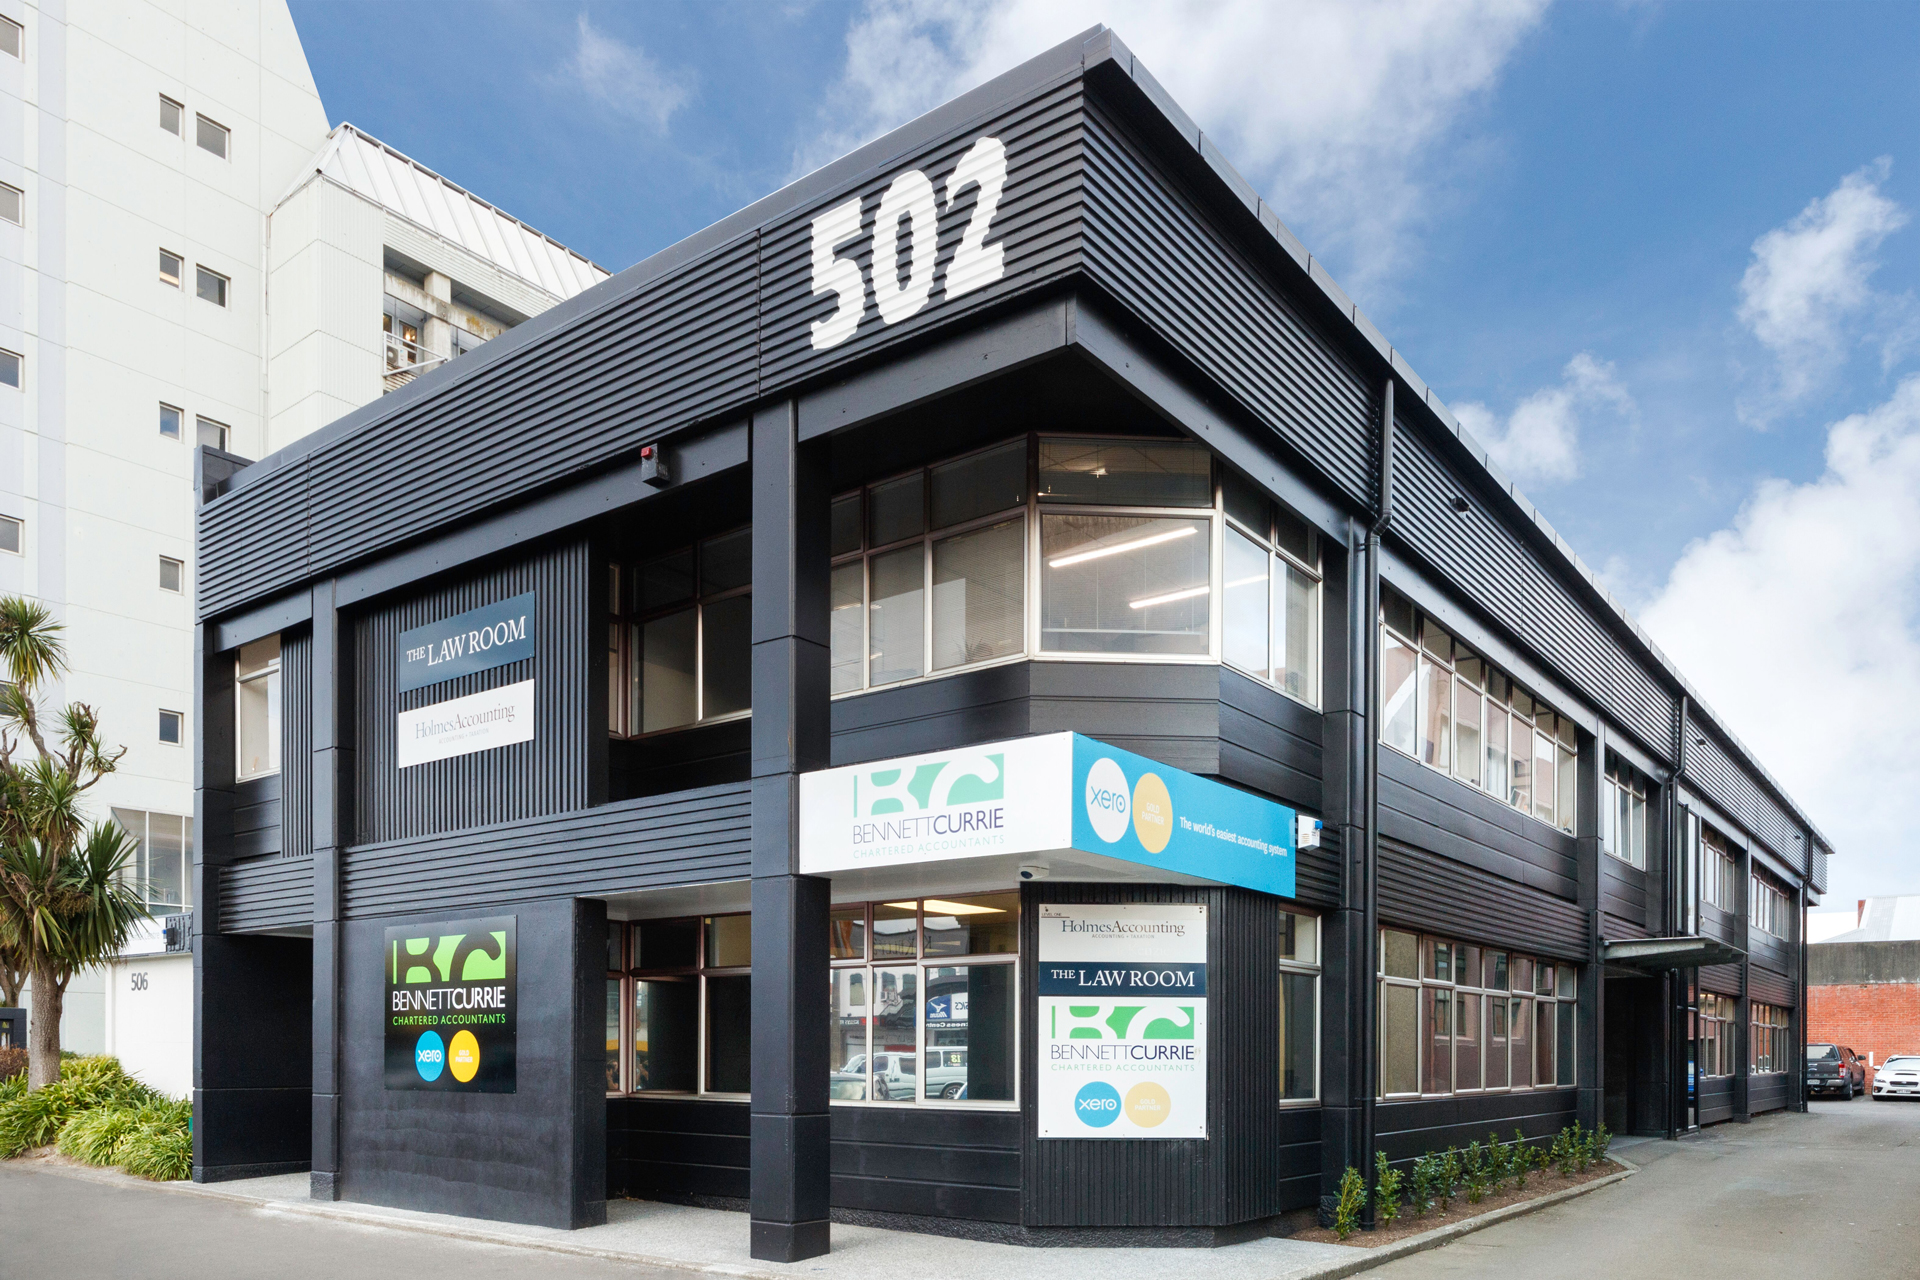 502 Main Street - BC Office